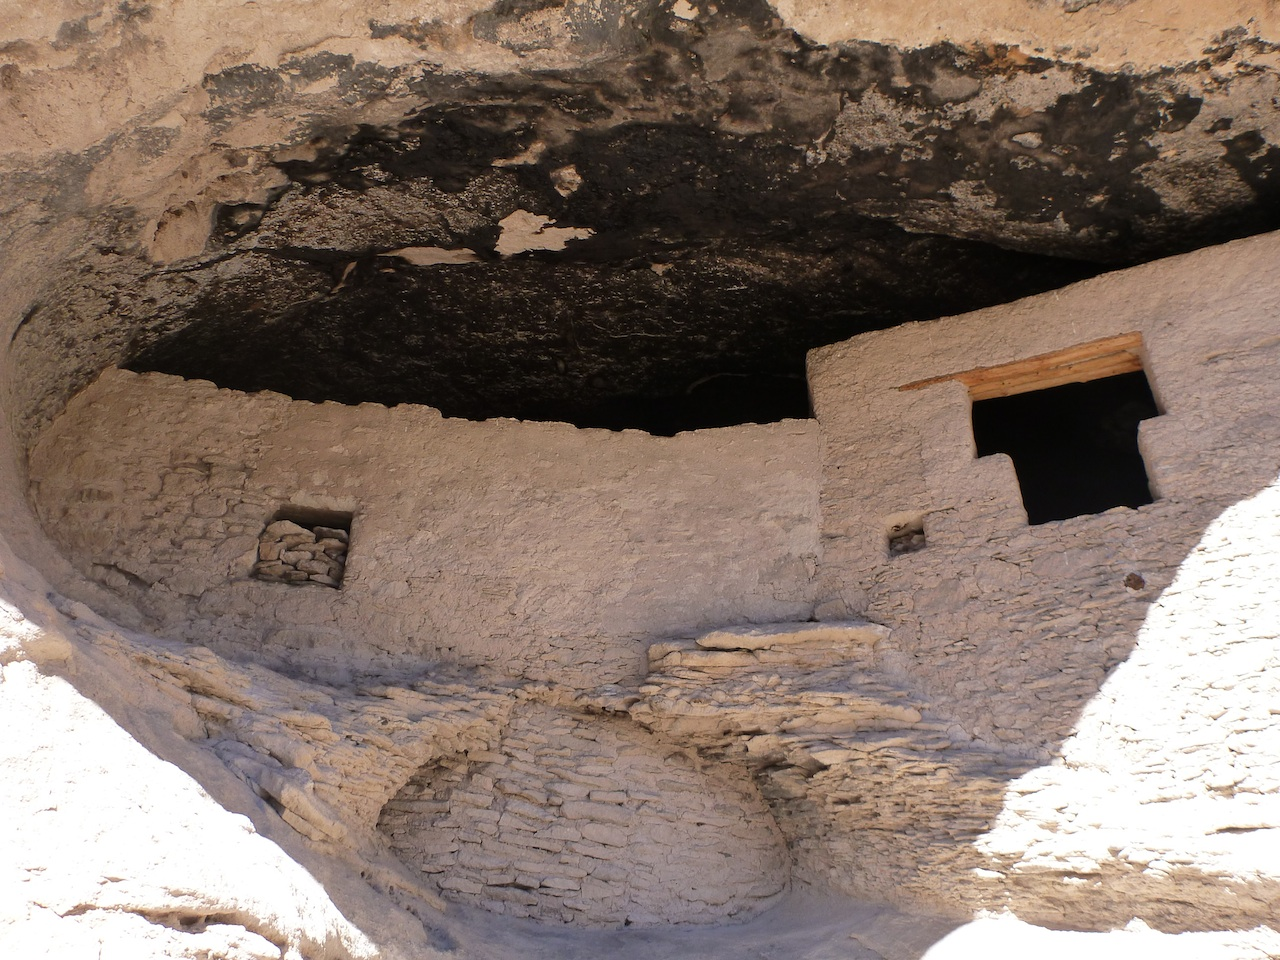 The Gila Cliff Dwellings